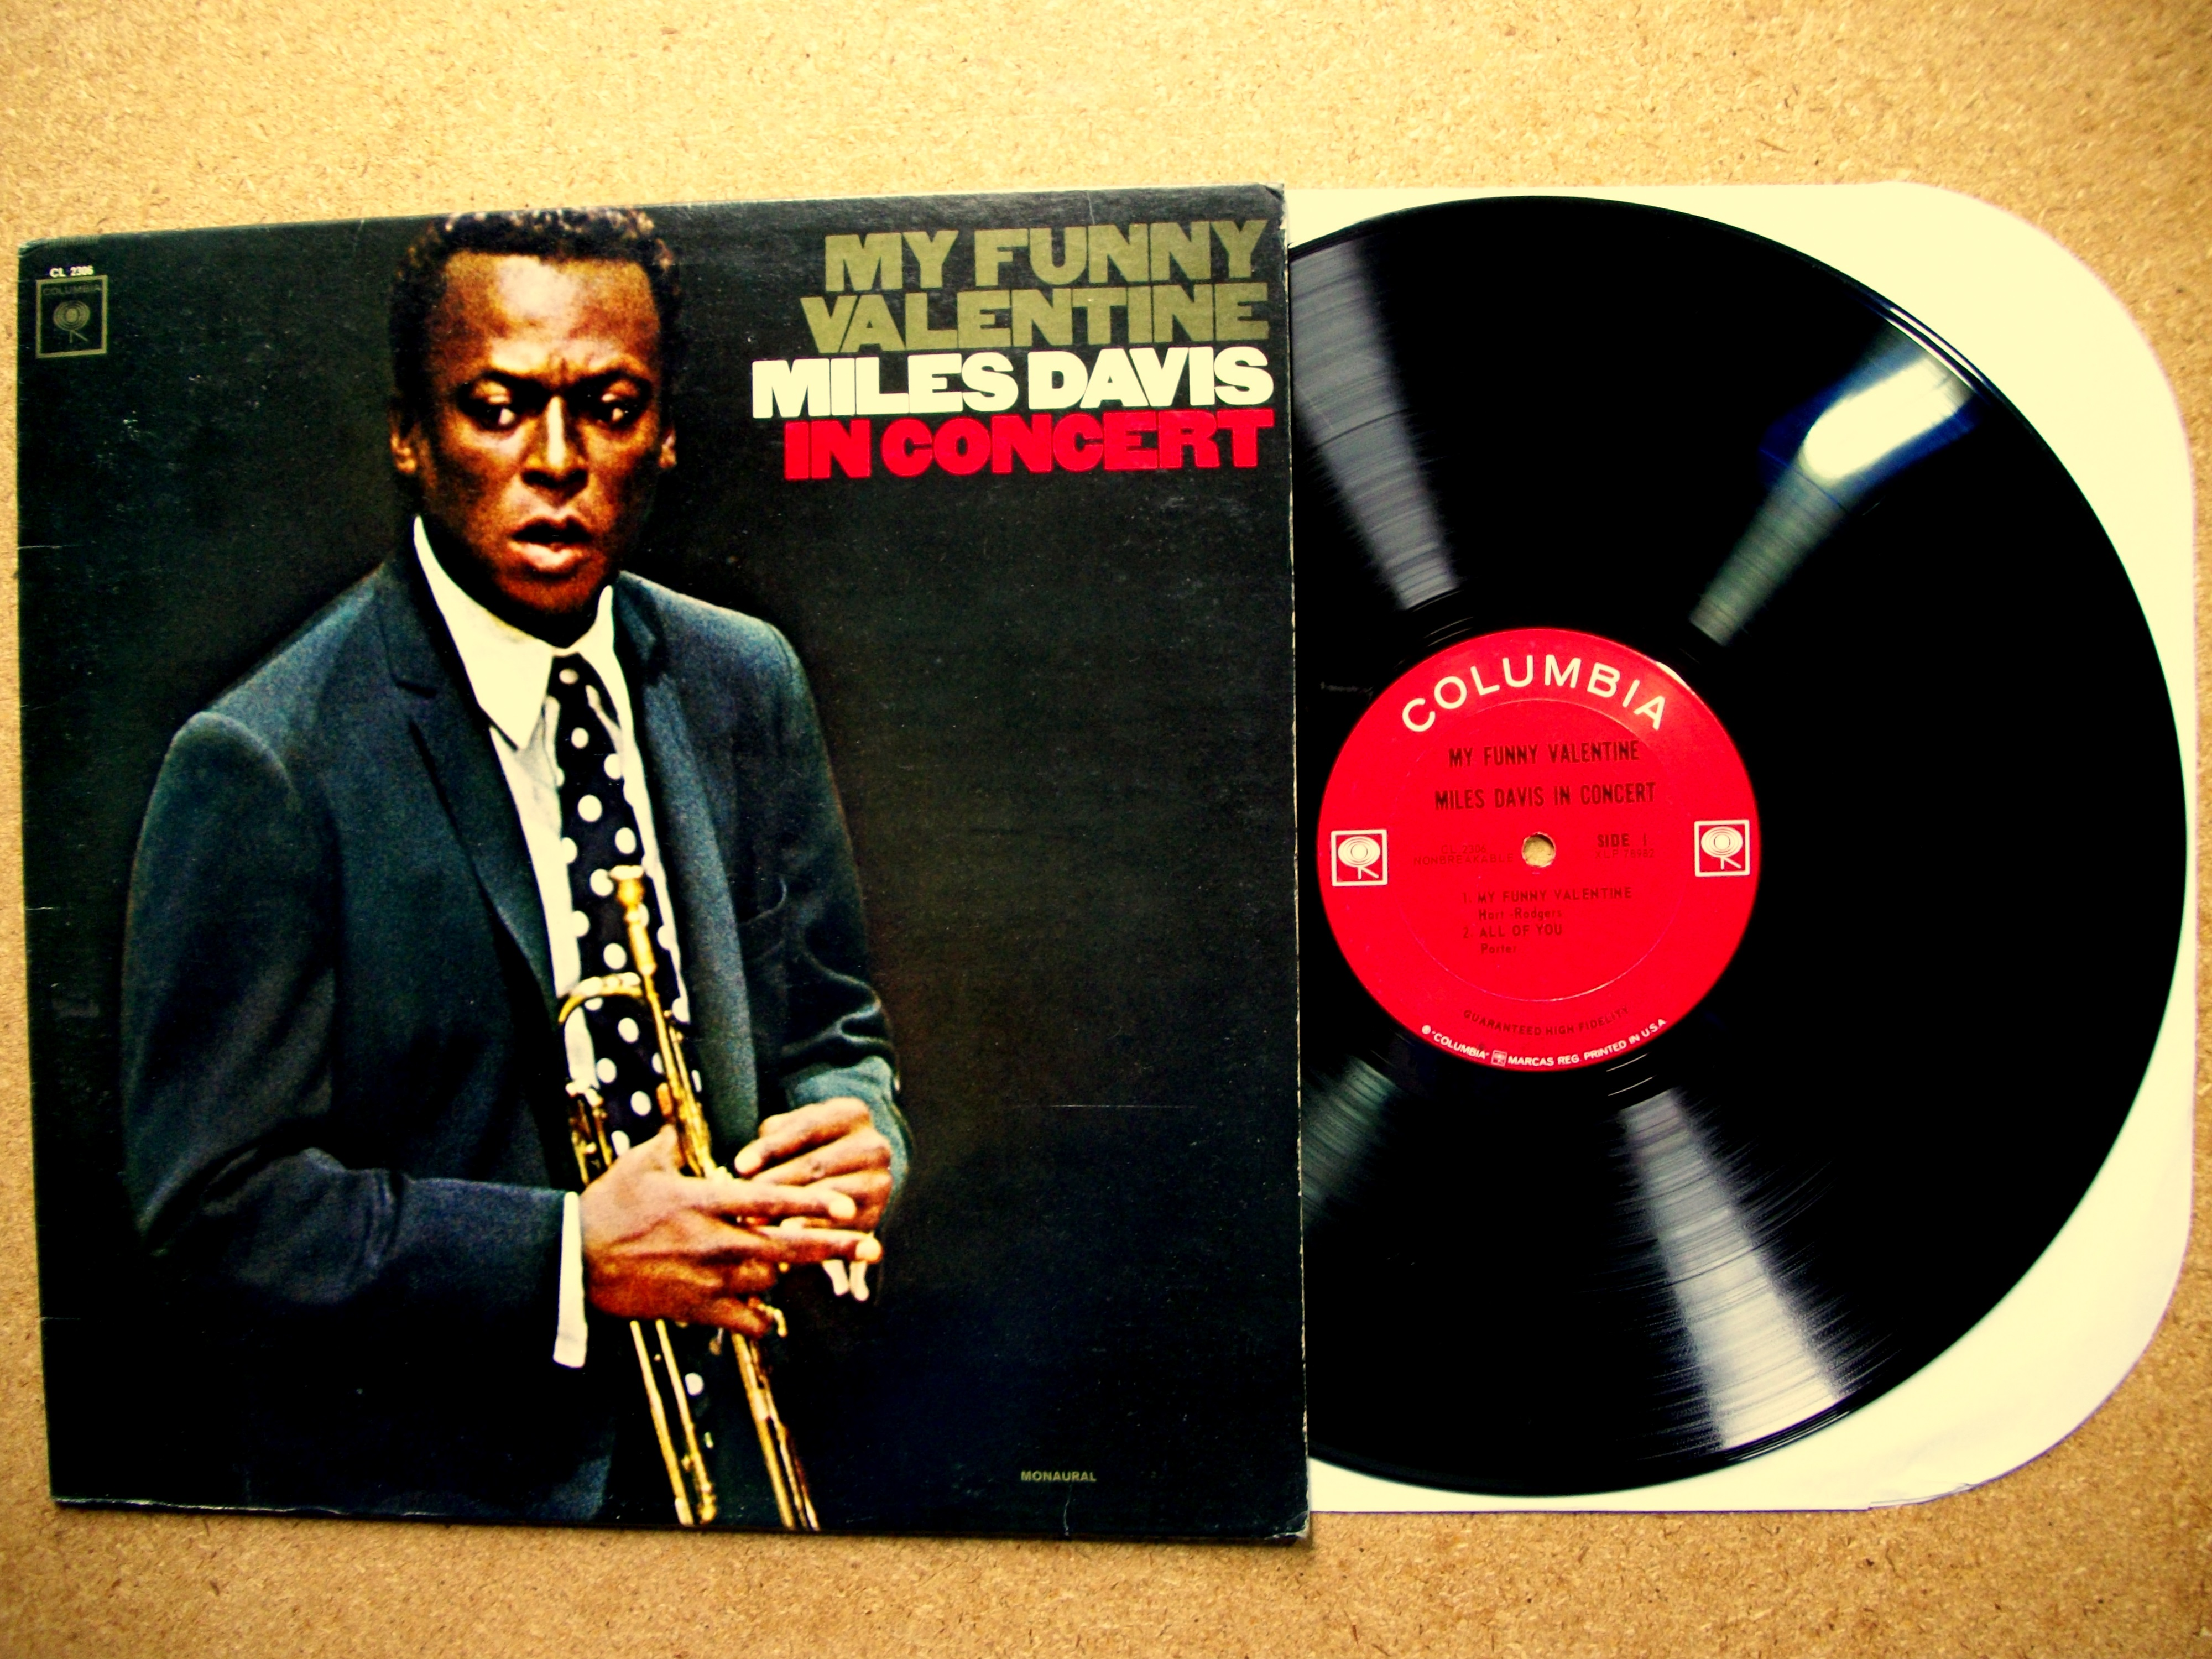 SINISTER VINYL COLLECTION: MILES DAVIS U2013 MY FUNNY VALENTINE (1964 U2013 1965)